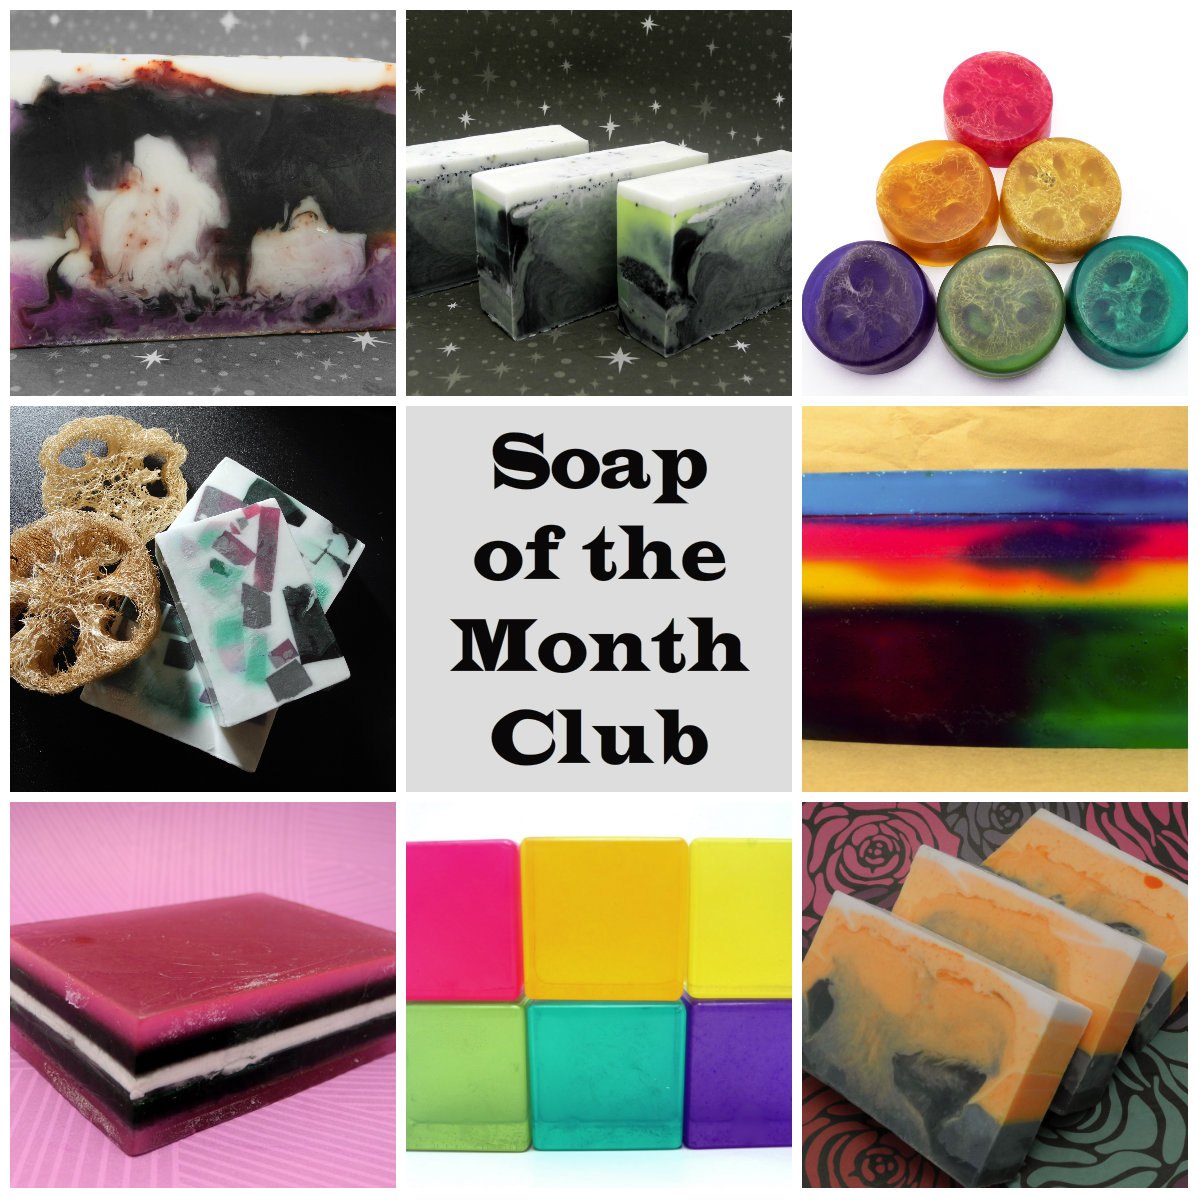 Knitting Club Of The Month : Dyeabolical knit dye read new product soap of the